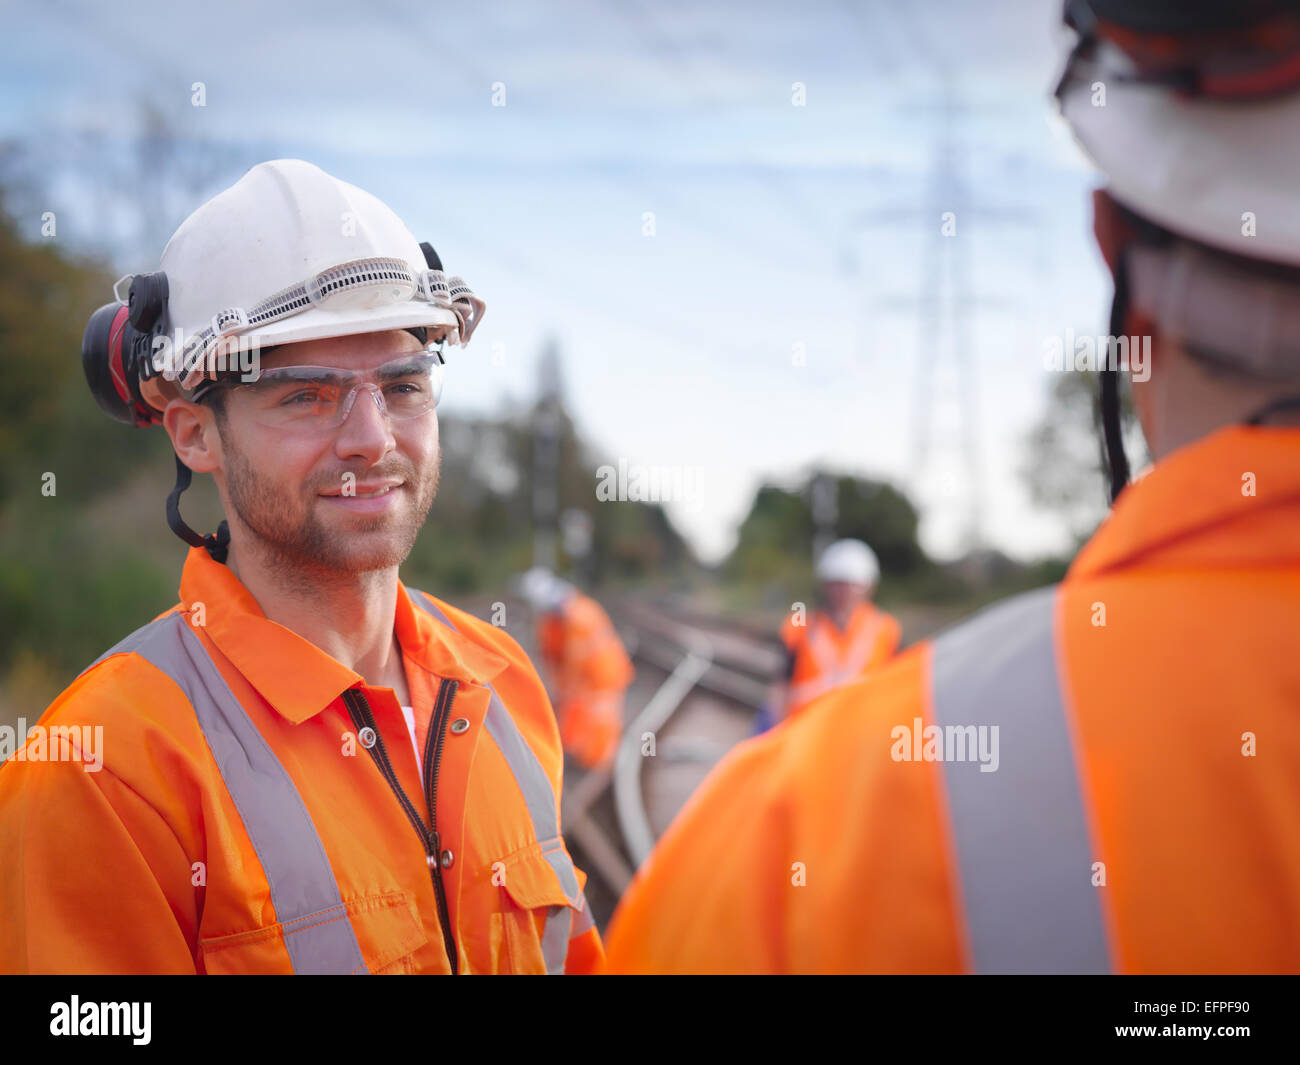 Portrait of apprentice railway maintenance worker in discussion on track - Stock Image